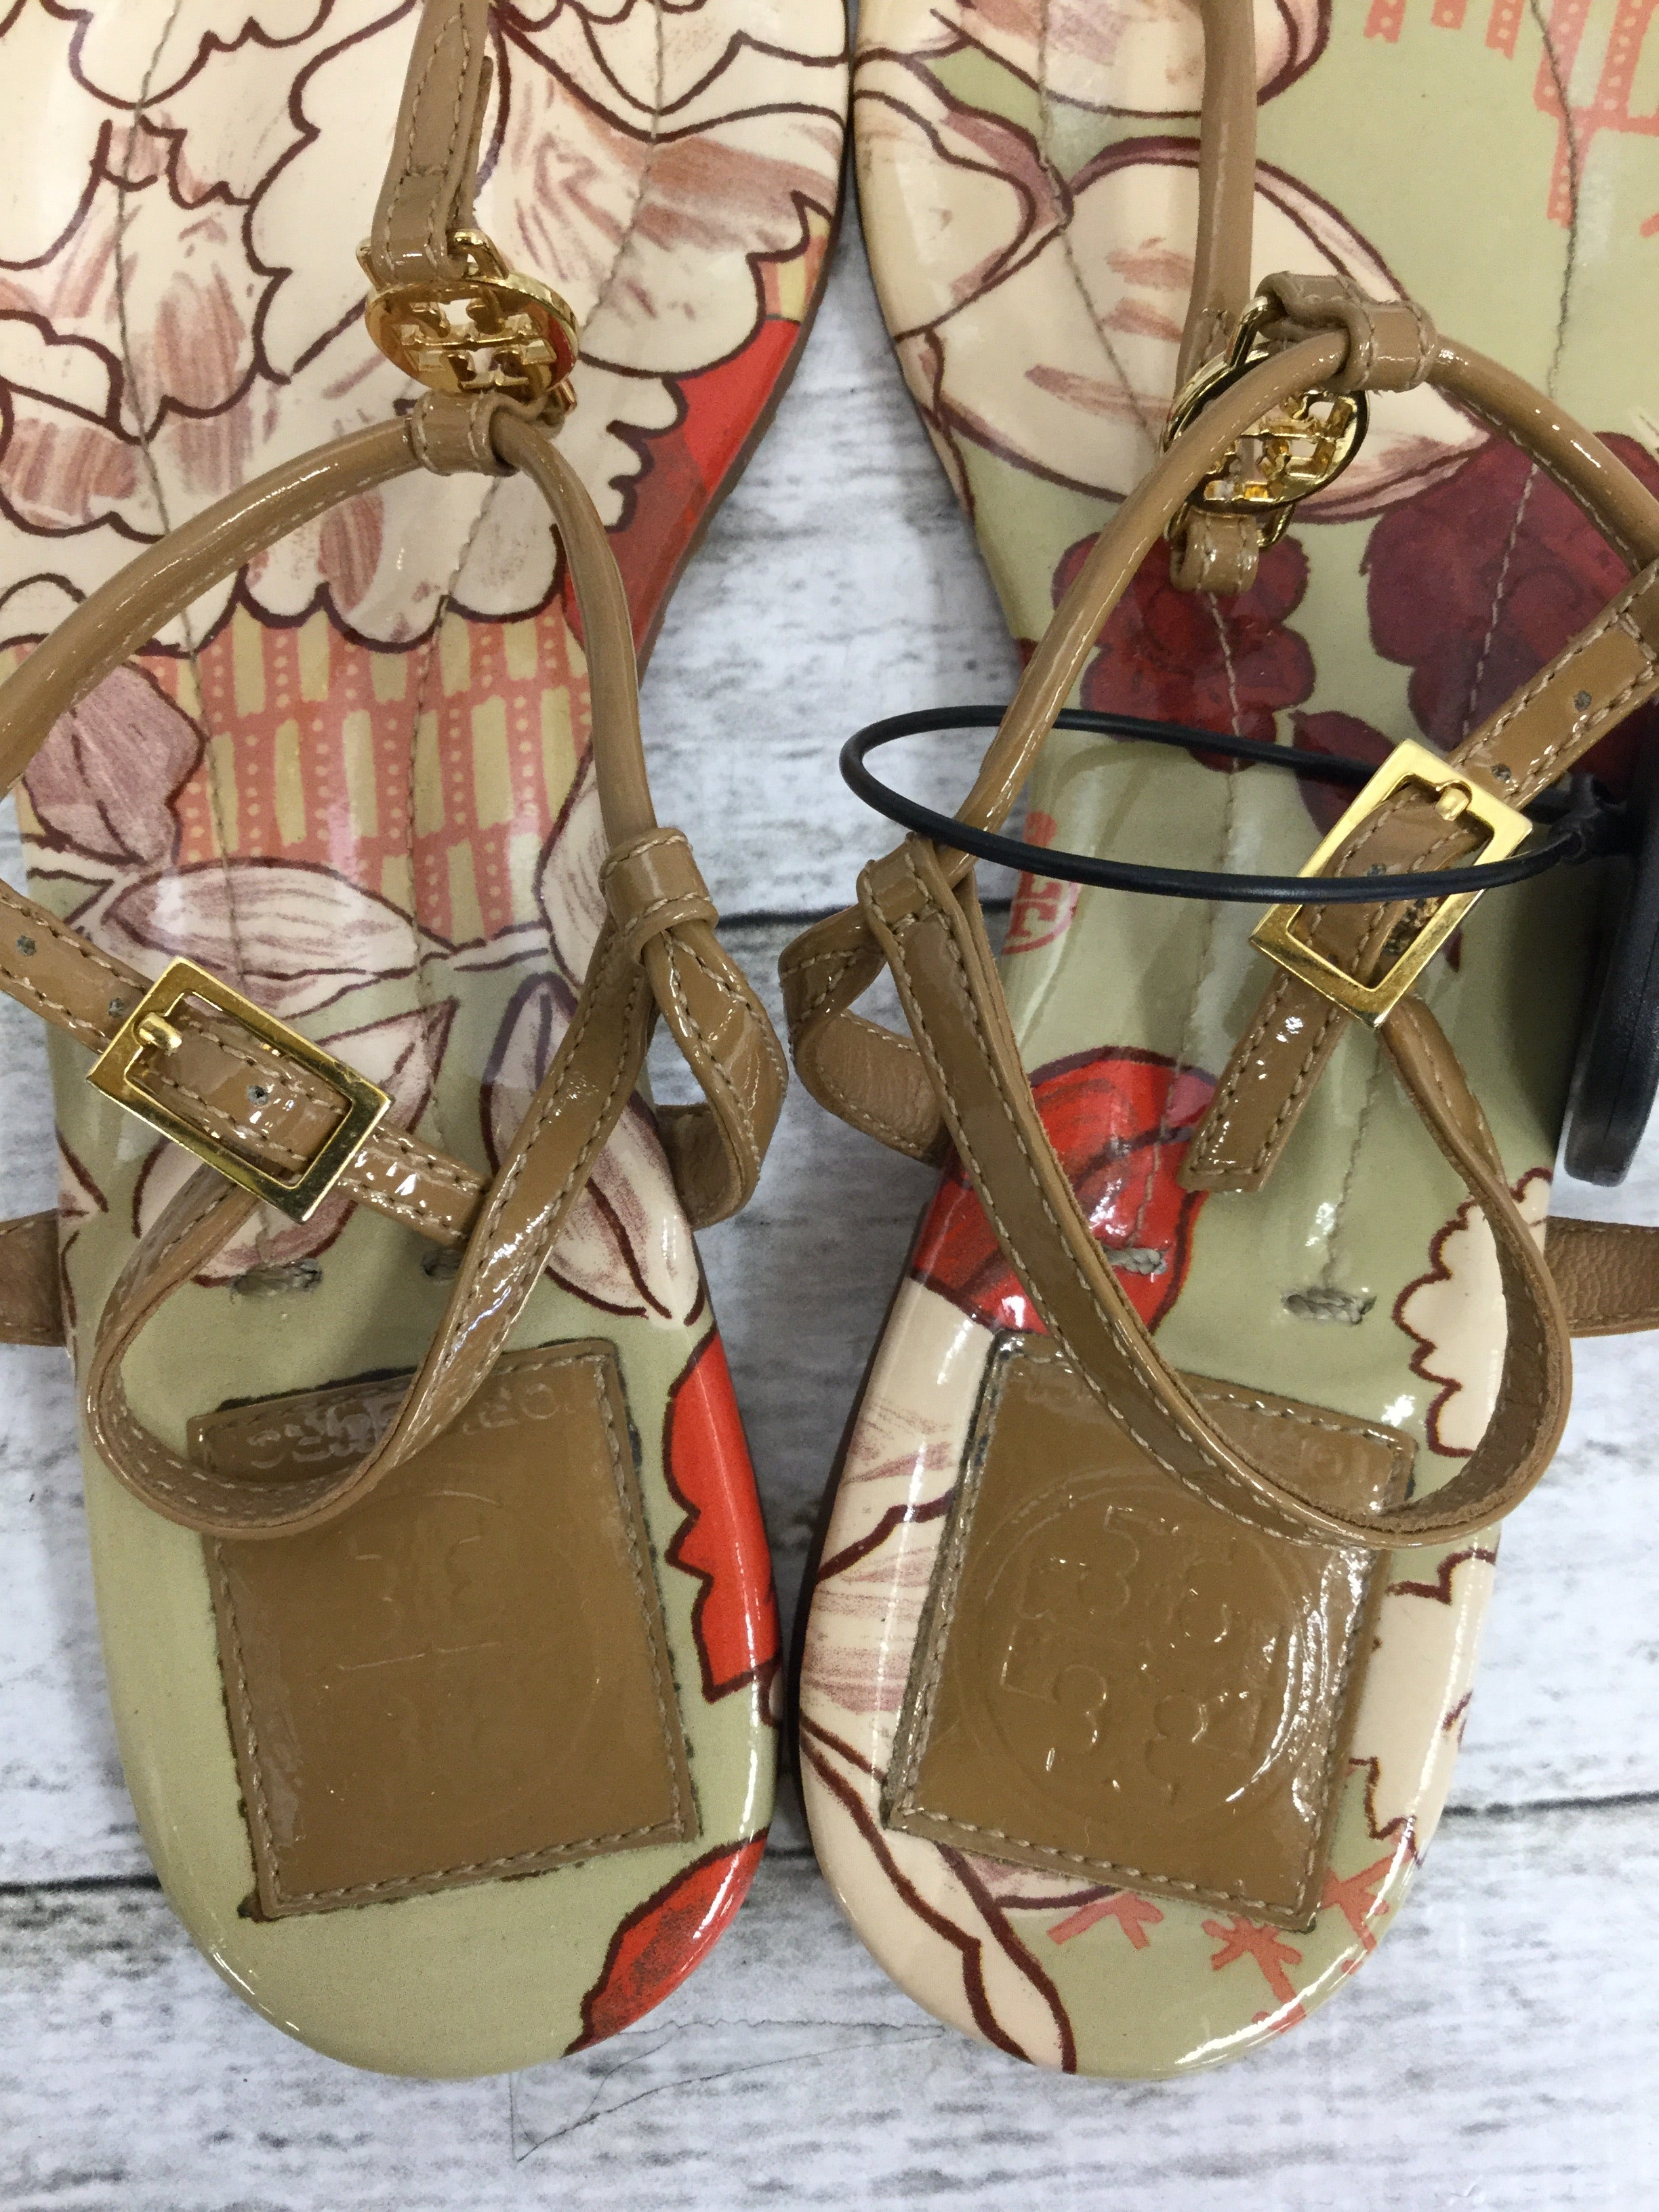 Photo #2 - BRAND: TORY BURCH , STYLE: SANDALS , COLOR: TAN , SIZE: 6 , SKU: 127-4876-7204, , THESE SANDALS ARE VERY CLEAN AND IN GREAT CONDITION!